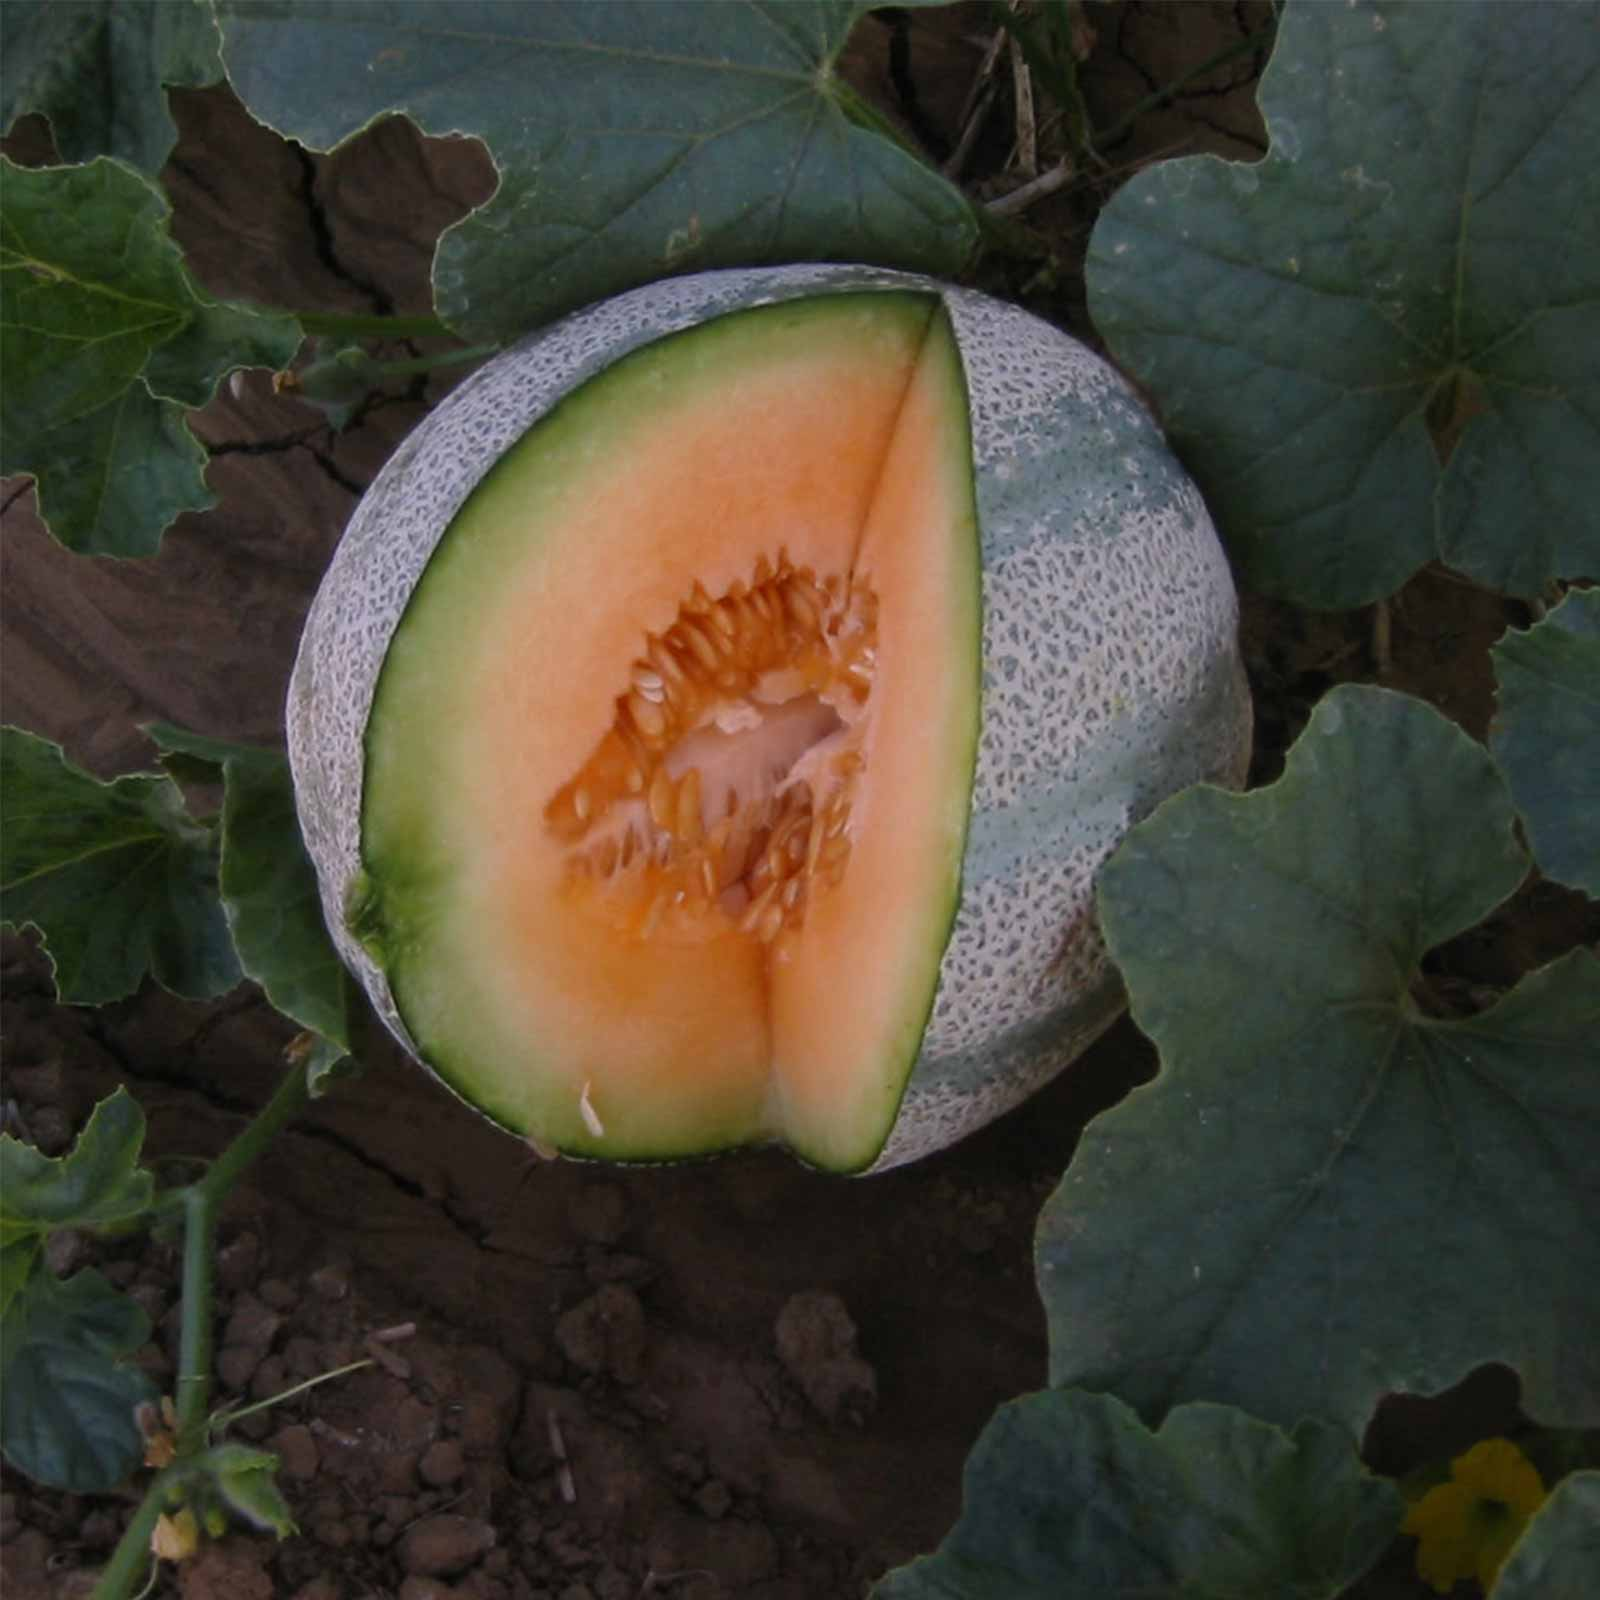 Cantaloupe Melon Garden Seeds - Planters Jumbo - 1 Lb - Non-GMO, Heirloom, Vegetable Gardening Seeds - Fruit